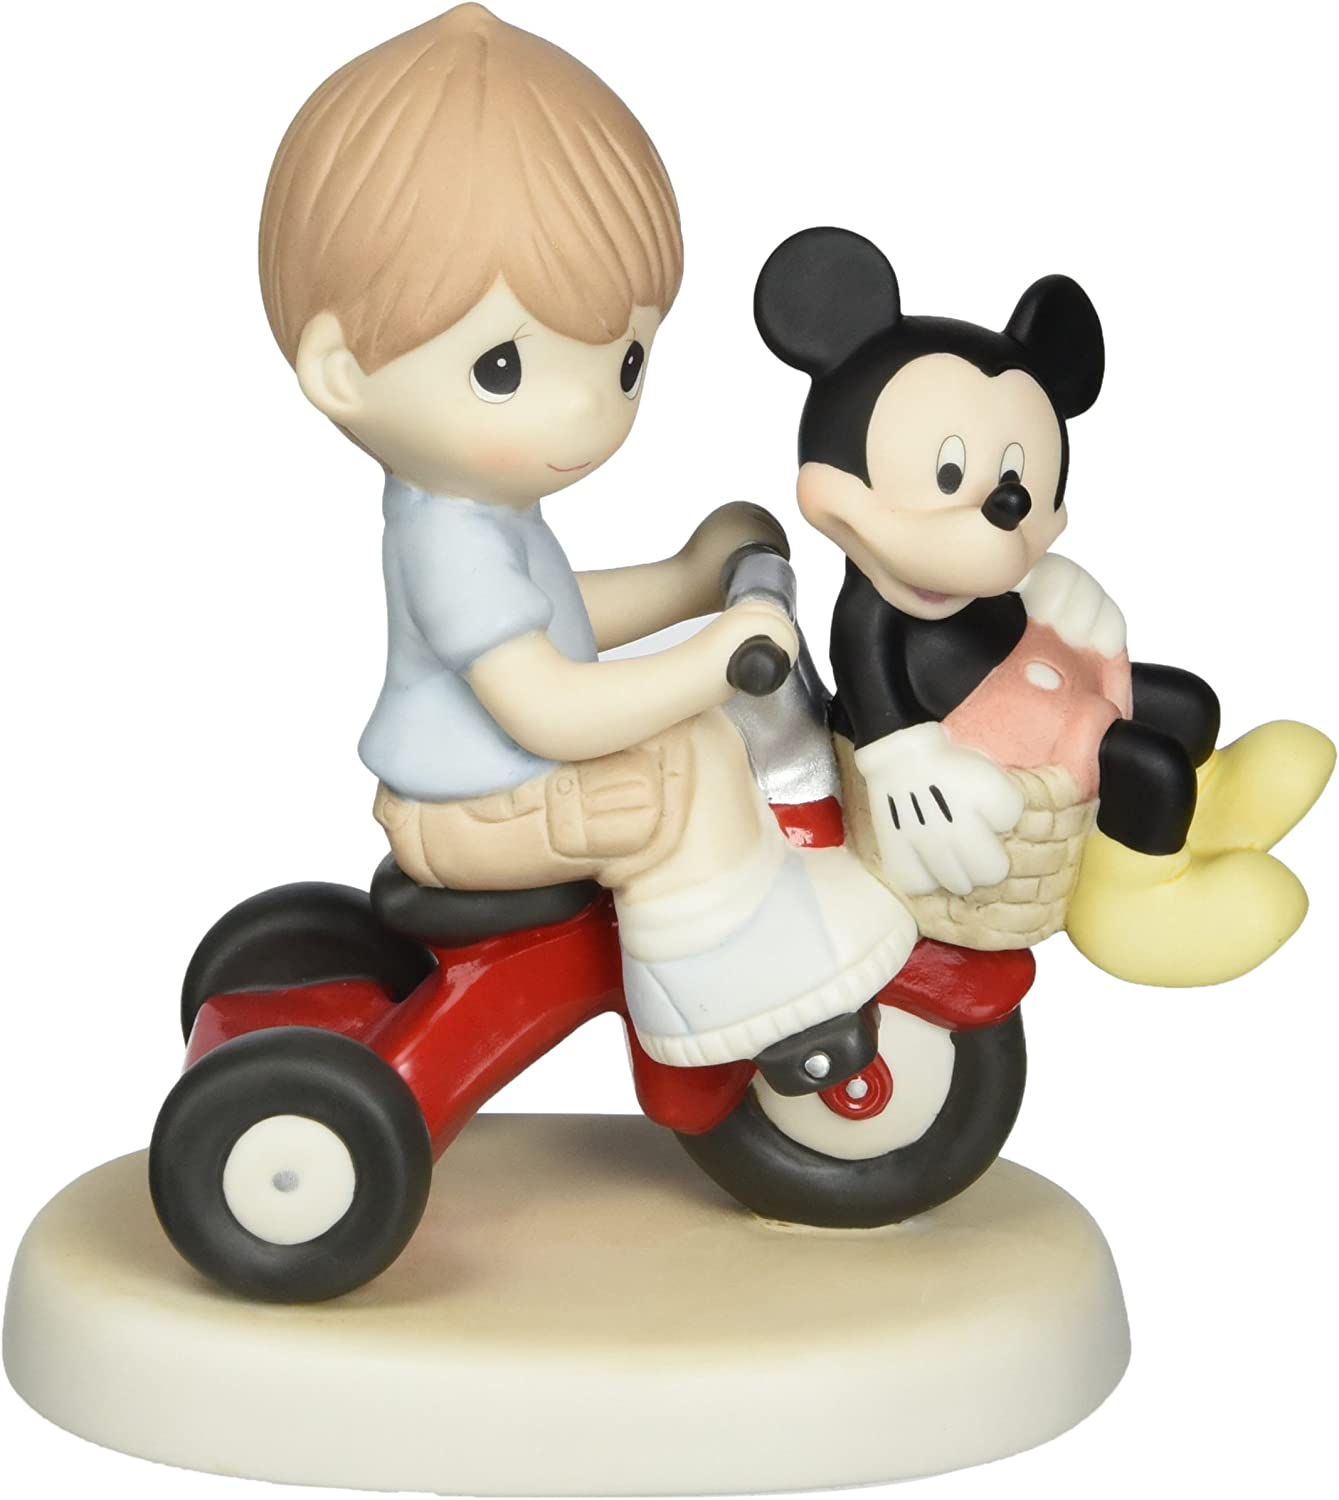 Precious Moments, Disney Showcase Collection, There's Always Room For A Friend, Bisque Porcelain Figurine, Boy, 139012